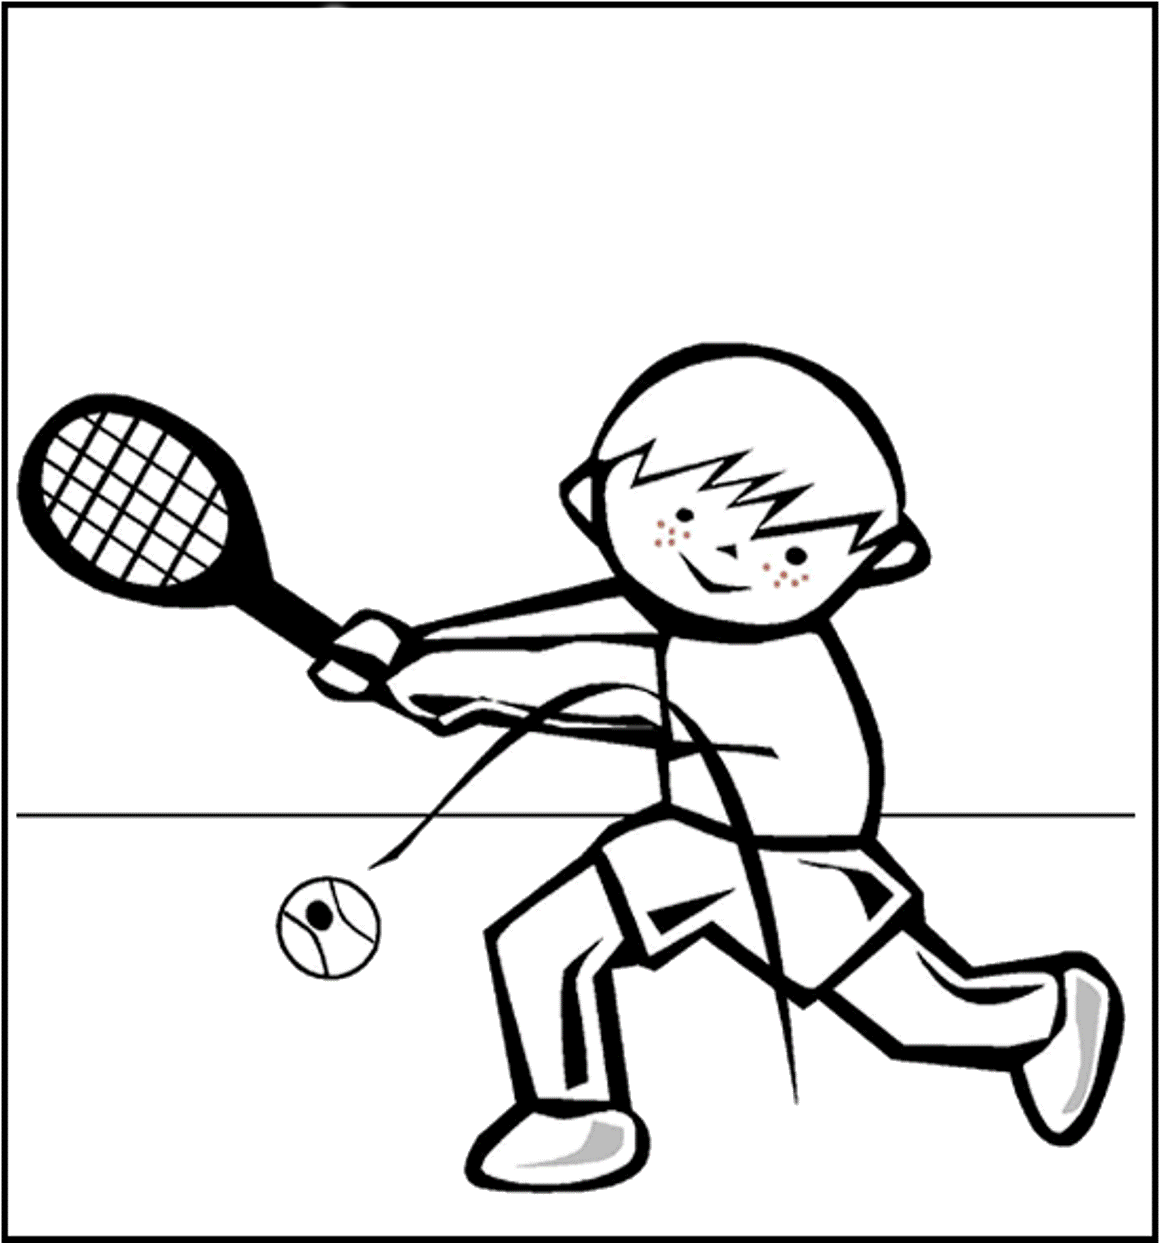 Hitting A Tennis Ball Coloring Pages For Kids Bfy Printable Tennis Coloring Pages For Kids Sports Coloring Pages Coloring Pages Colouring Pages